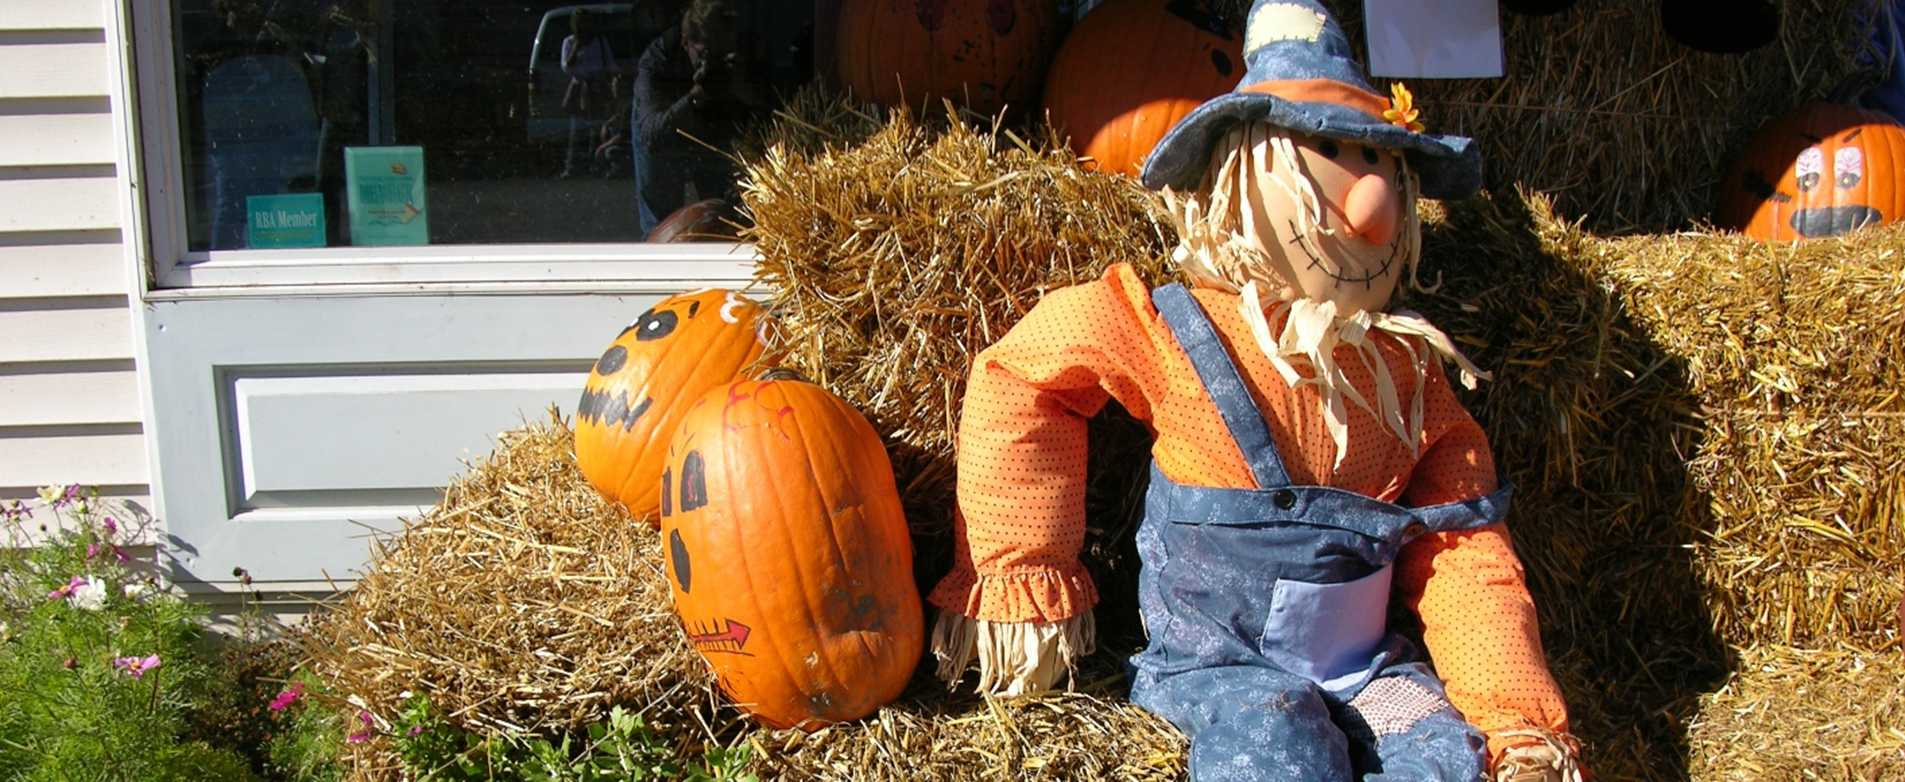 Pumpkin Patch Festival - Egg Harbor